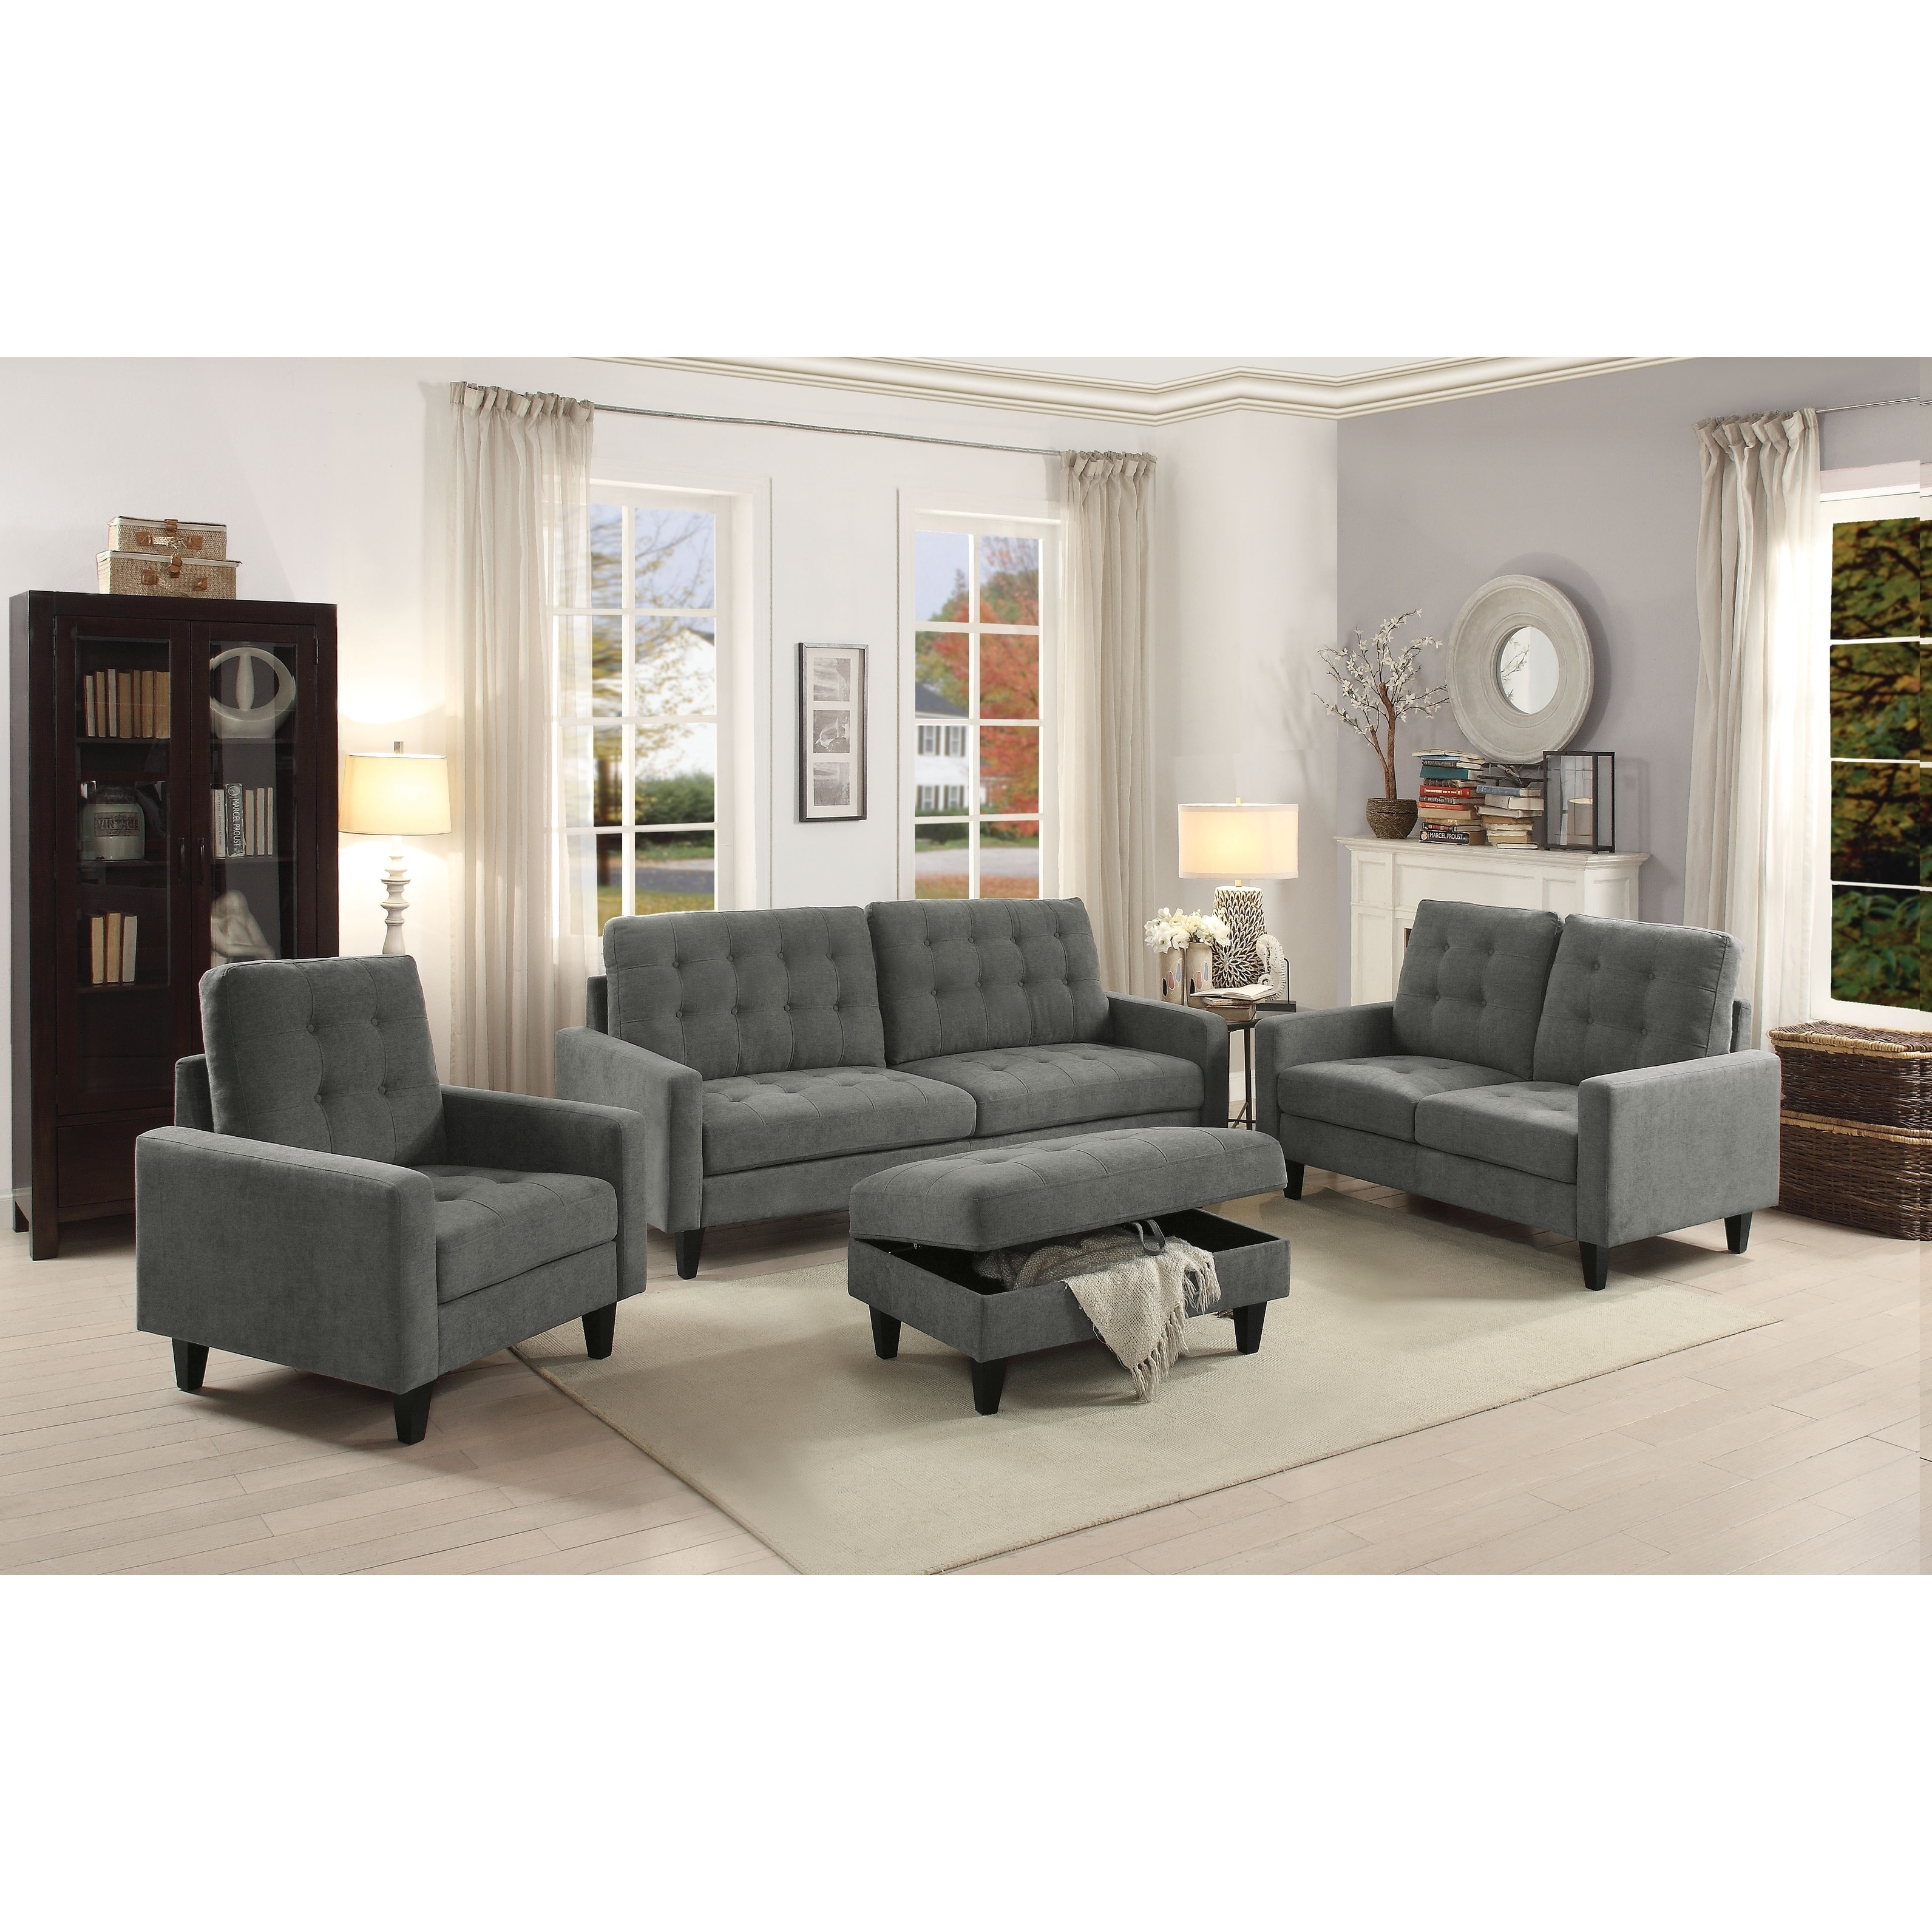 Acme nate memory foam sofa with tufting in gray fabric